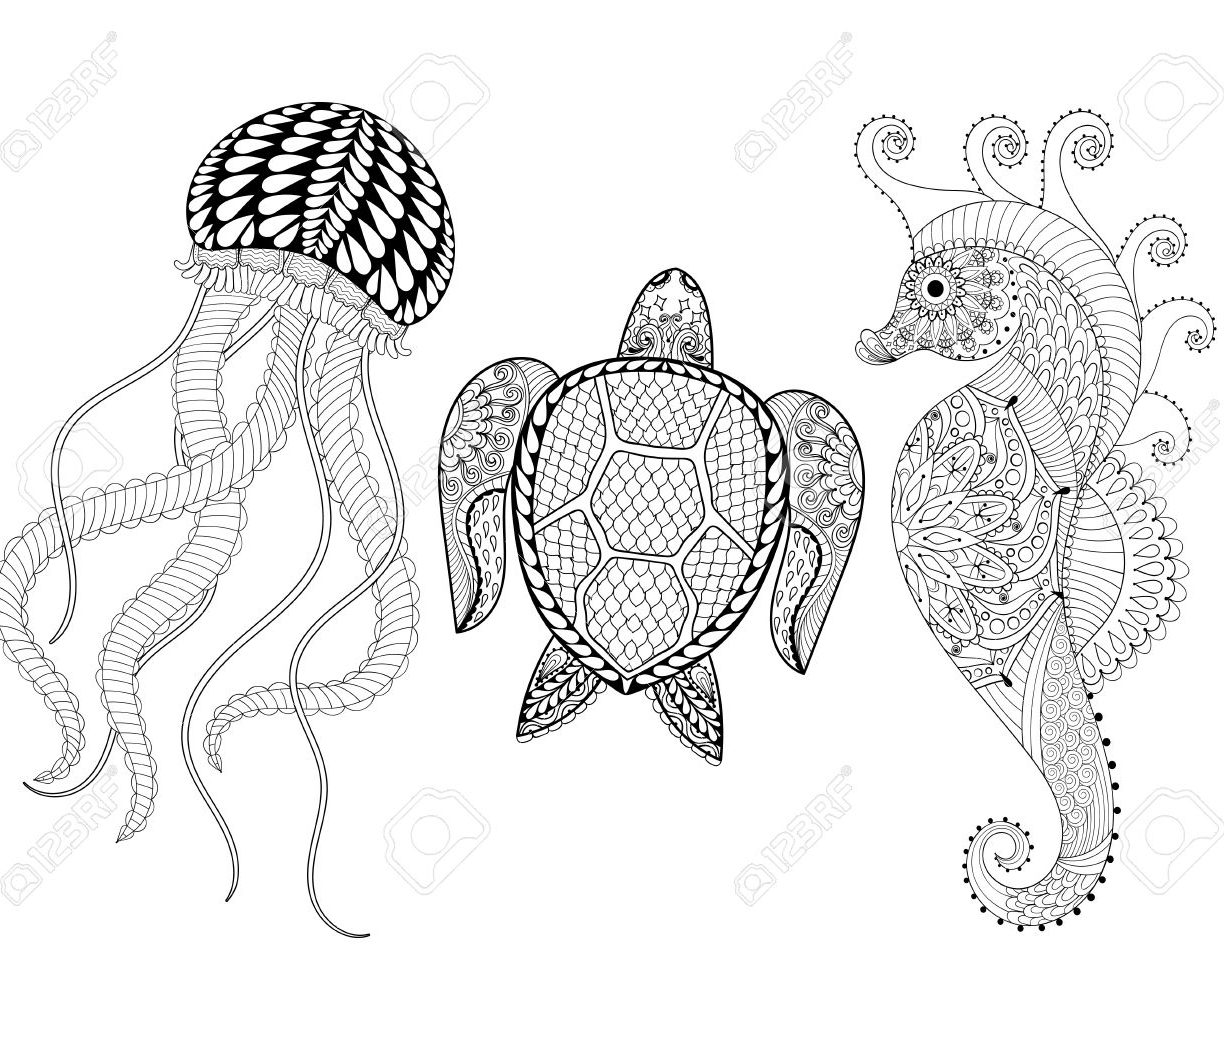 1224x1040 Good Jellyfish Coloringagehotoagesreschool Freerintable Box Nemo